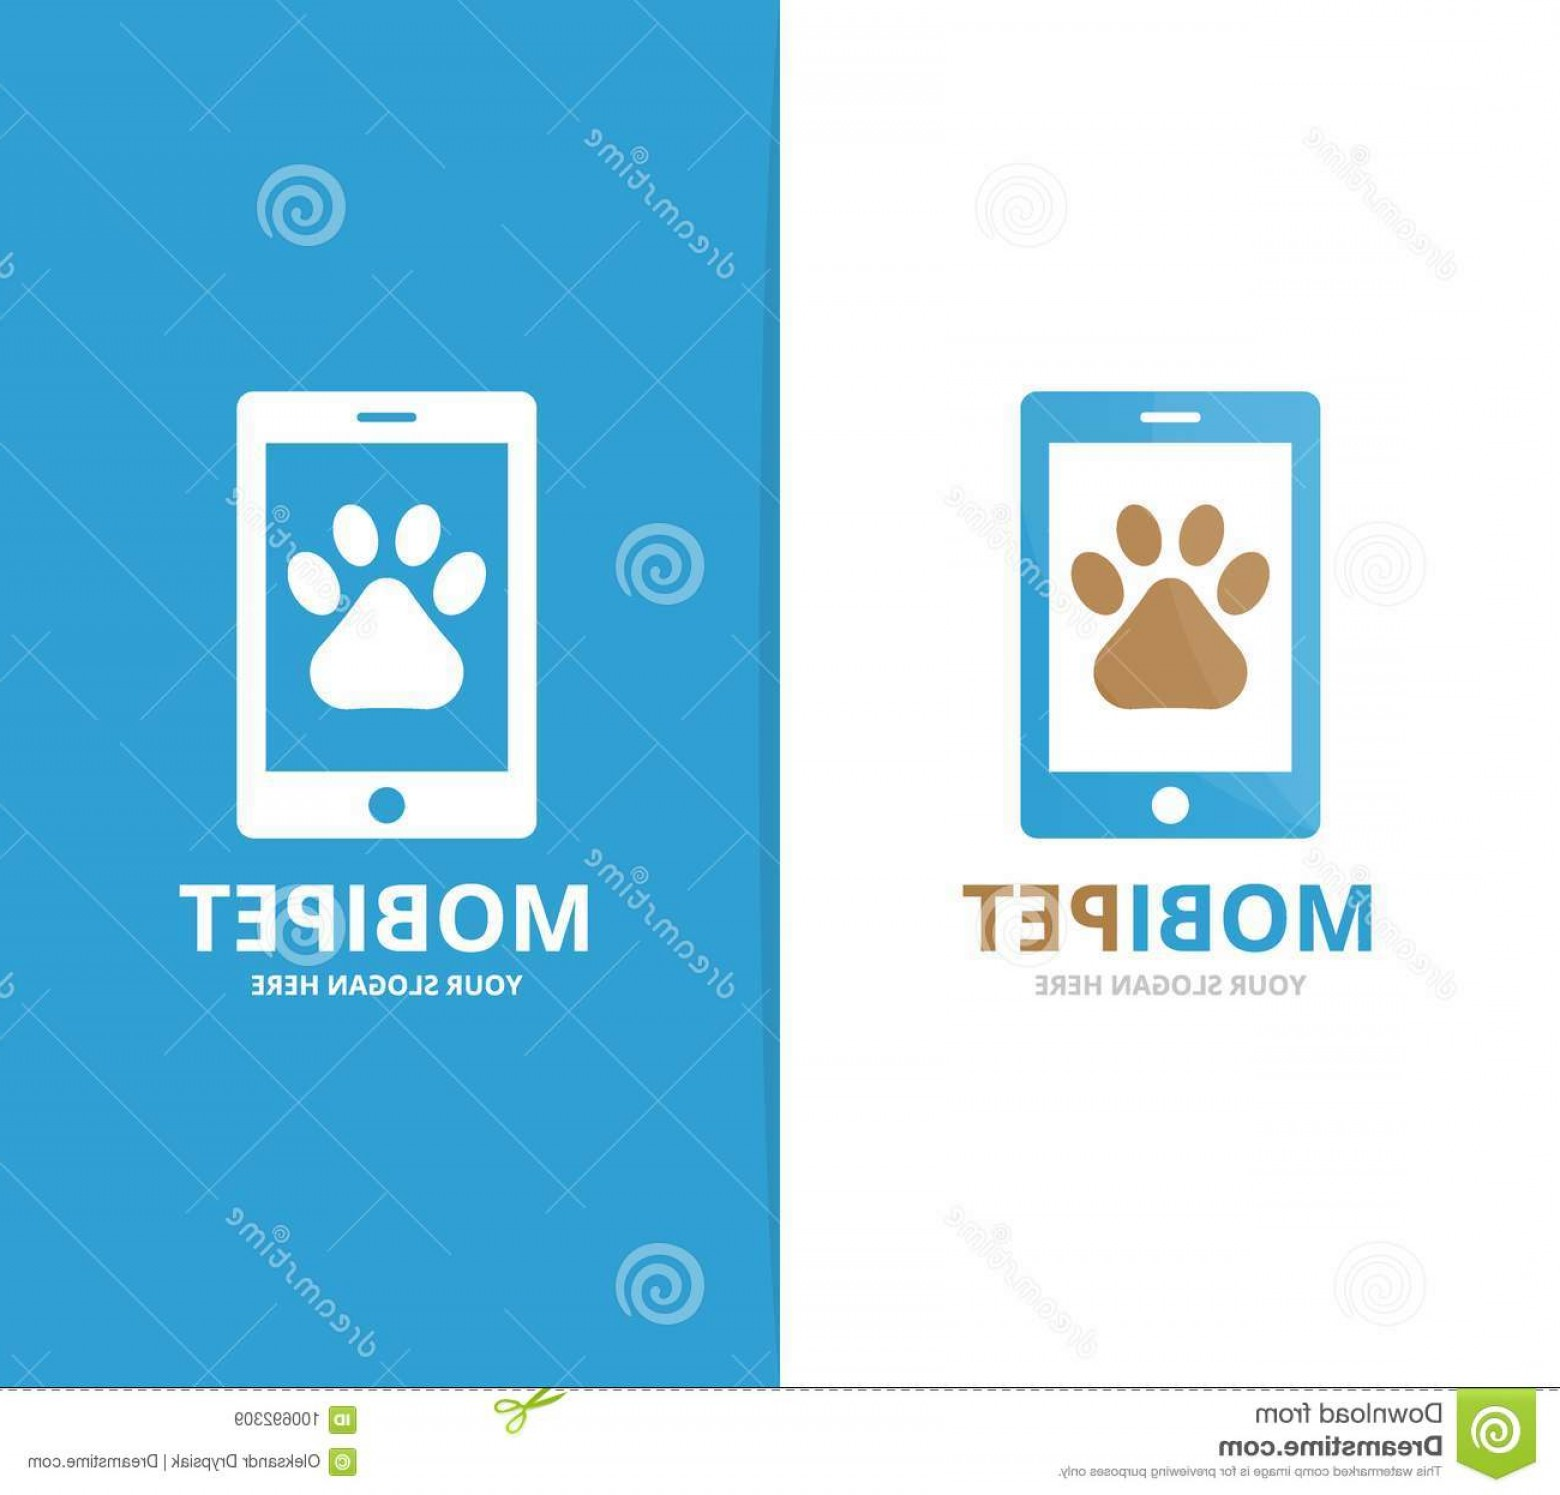 Small Email Icon Vector: Vector Logo Icon Design Element Companies Paw Phone Combination Pet Mobile Symbol Unique Vet Device Logotype Template Image